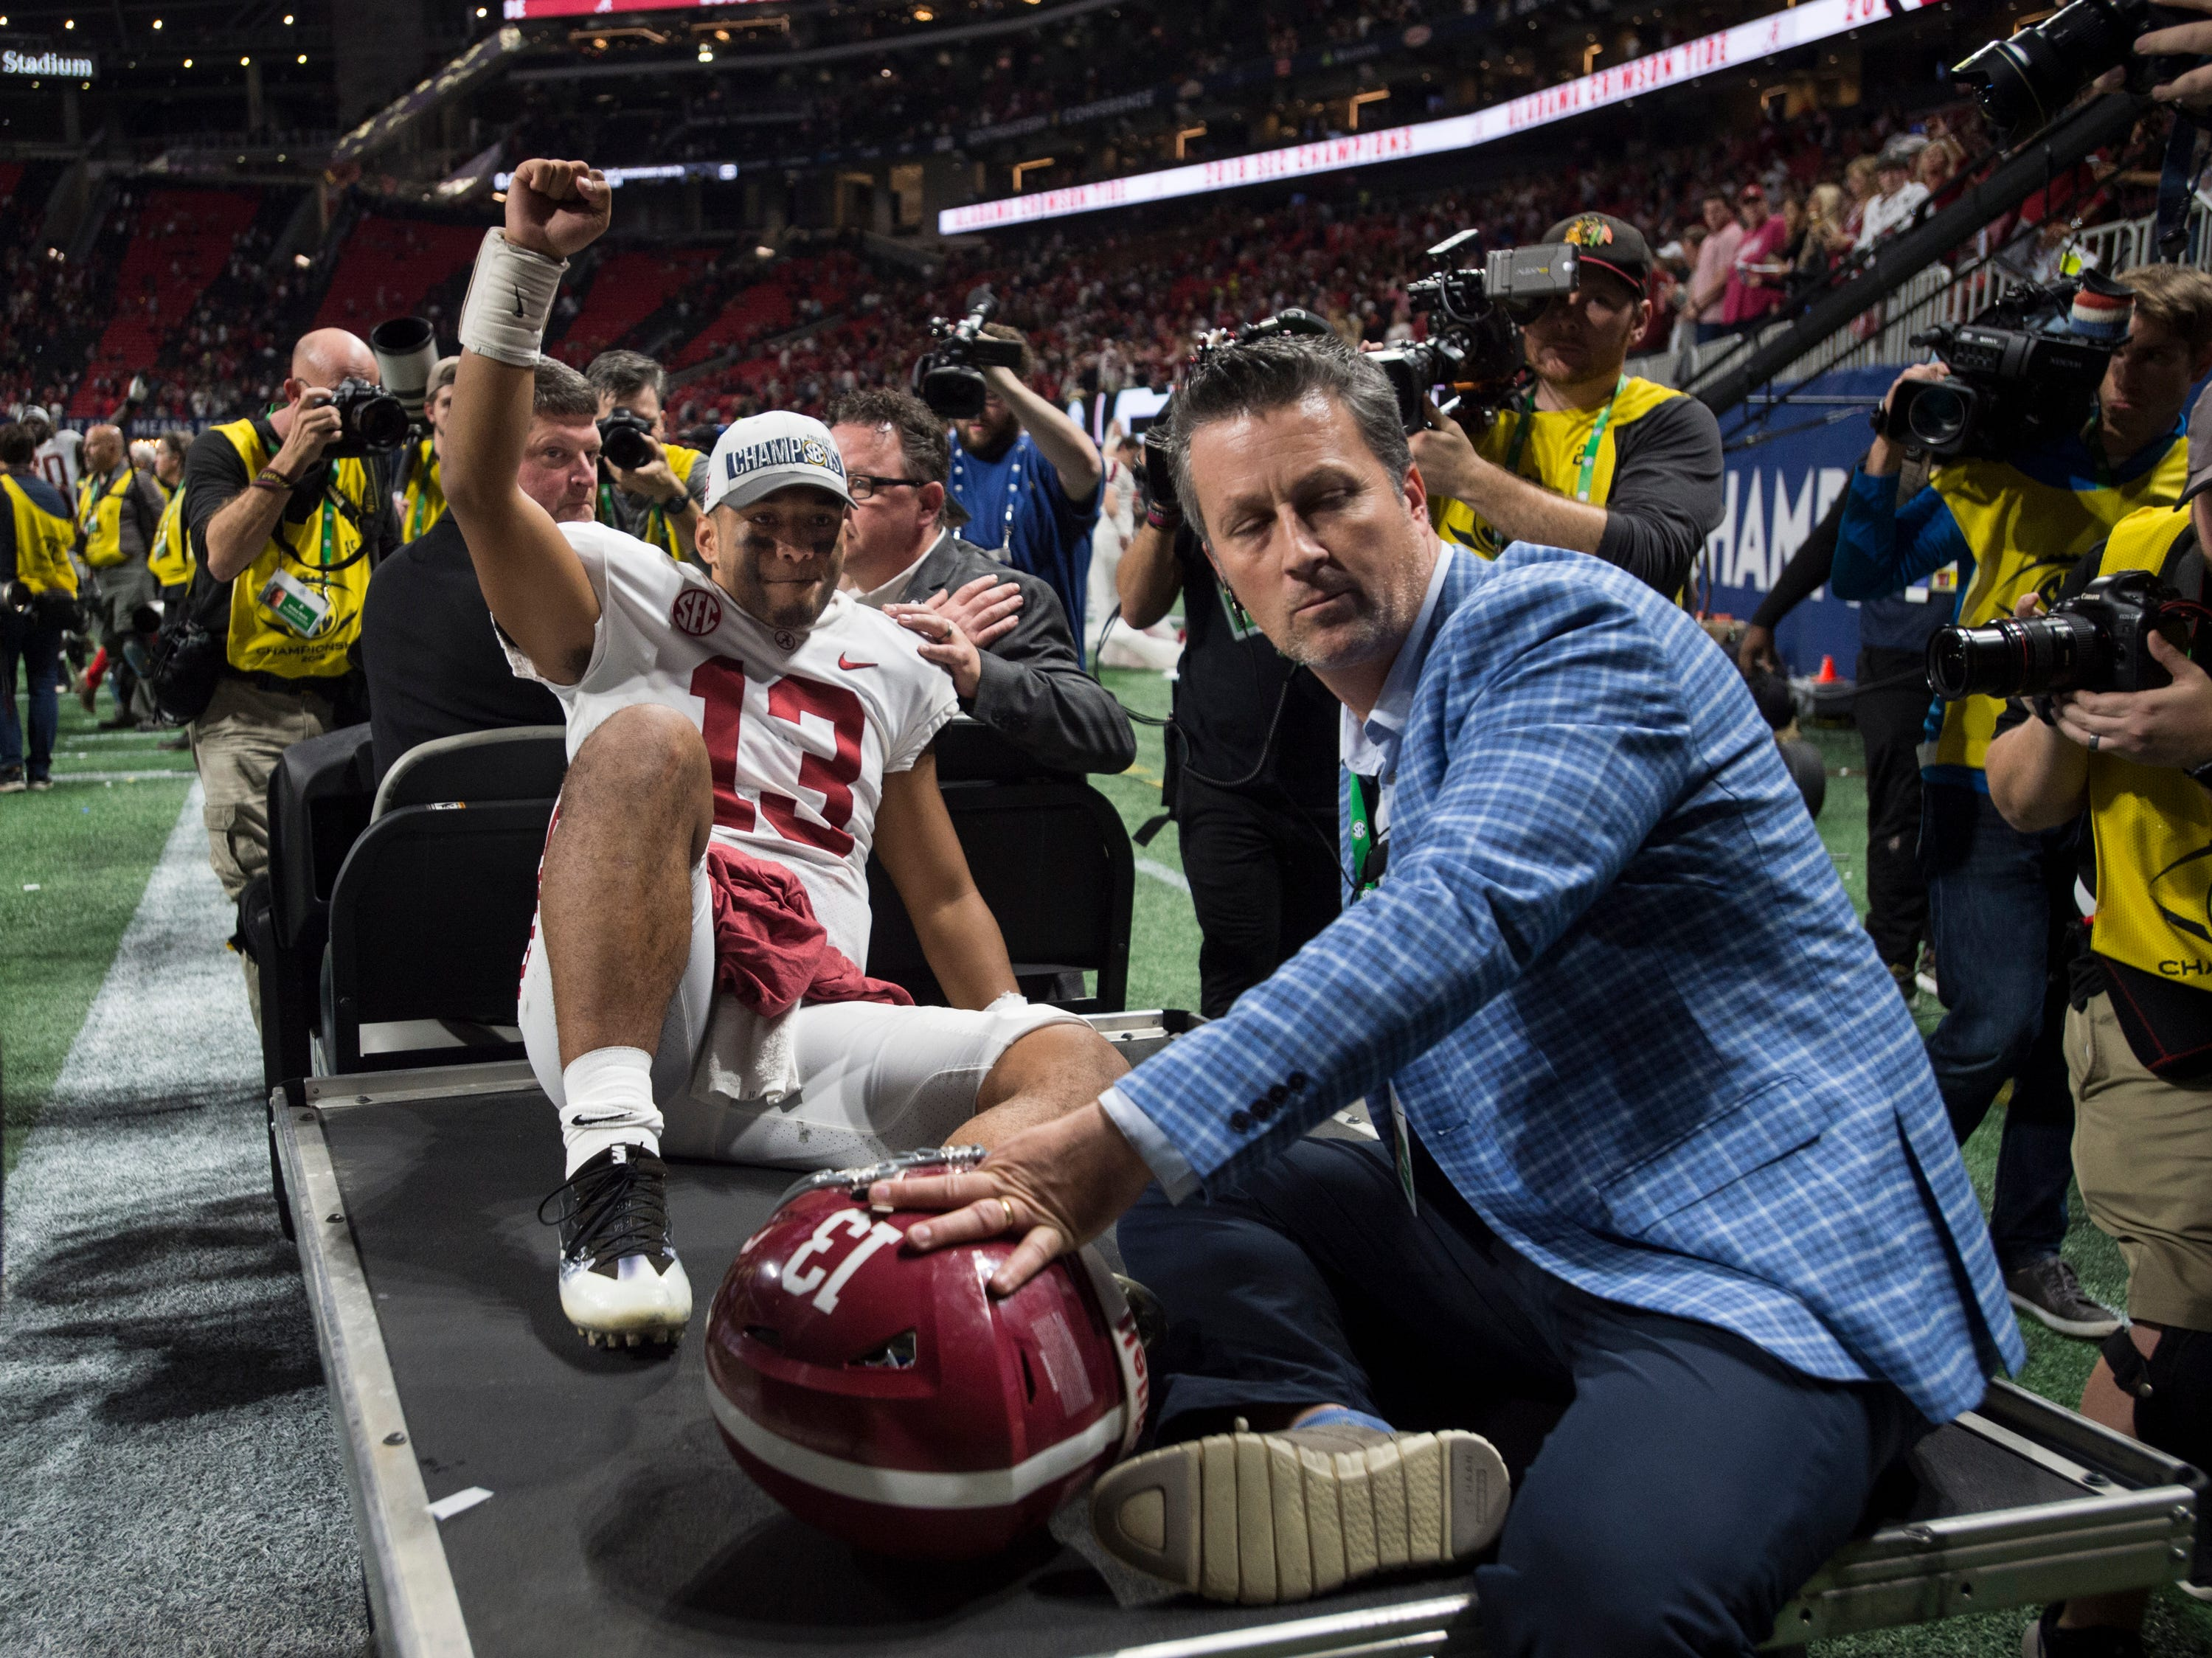 Alabama quarterback Tua Tagovailoa (13) acknowledges the fans as he is carted off the field during the SEC Championship game at Mercedes-Benz Stadium in Atlanta, Ga., on Saturday Dec. 1, 2018. Alabama defeated Georgia 35-28.